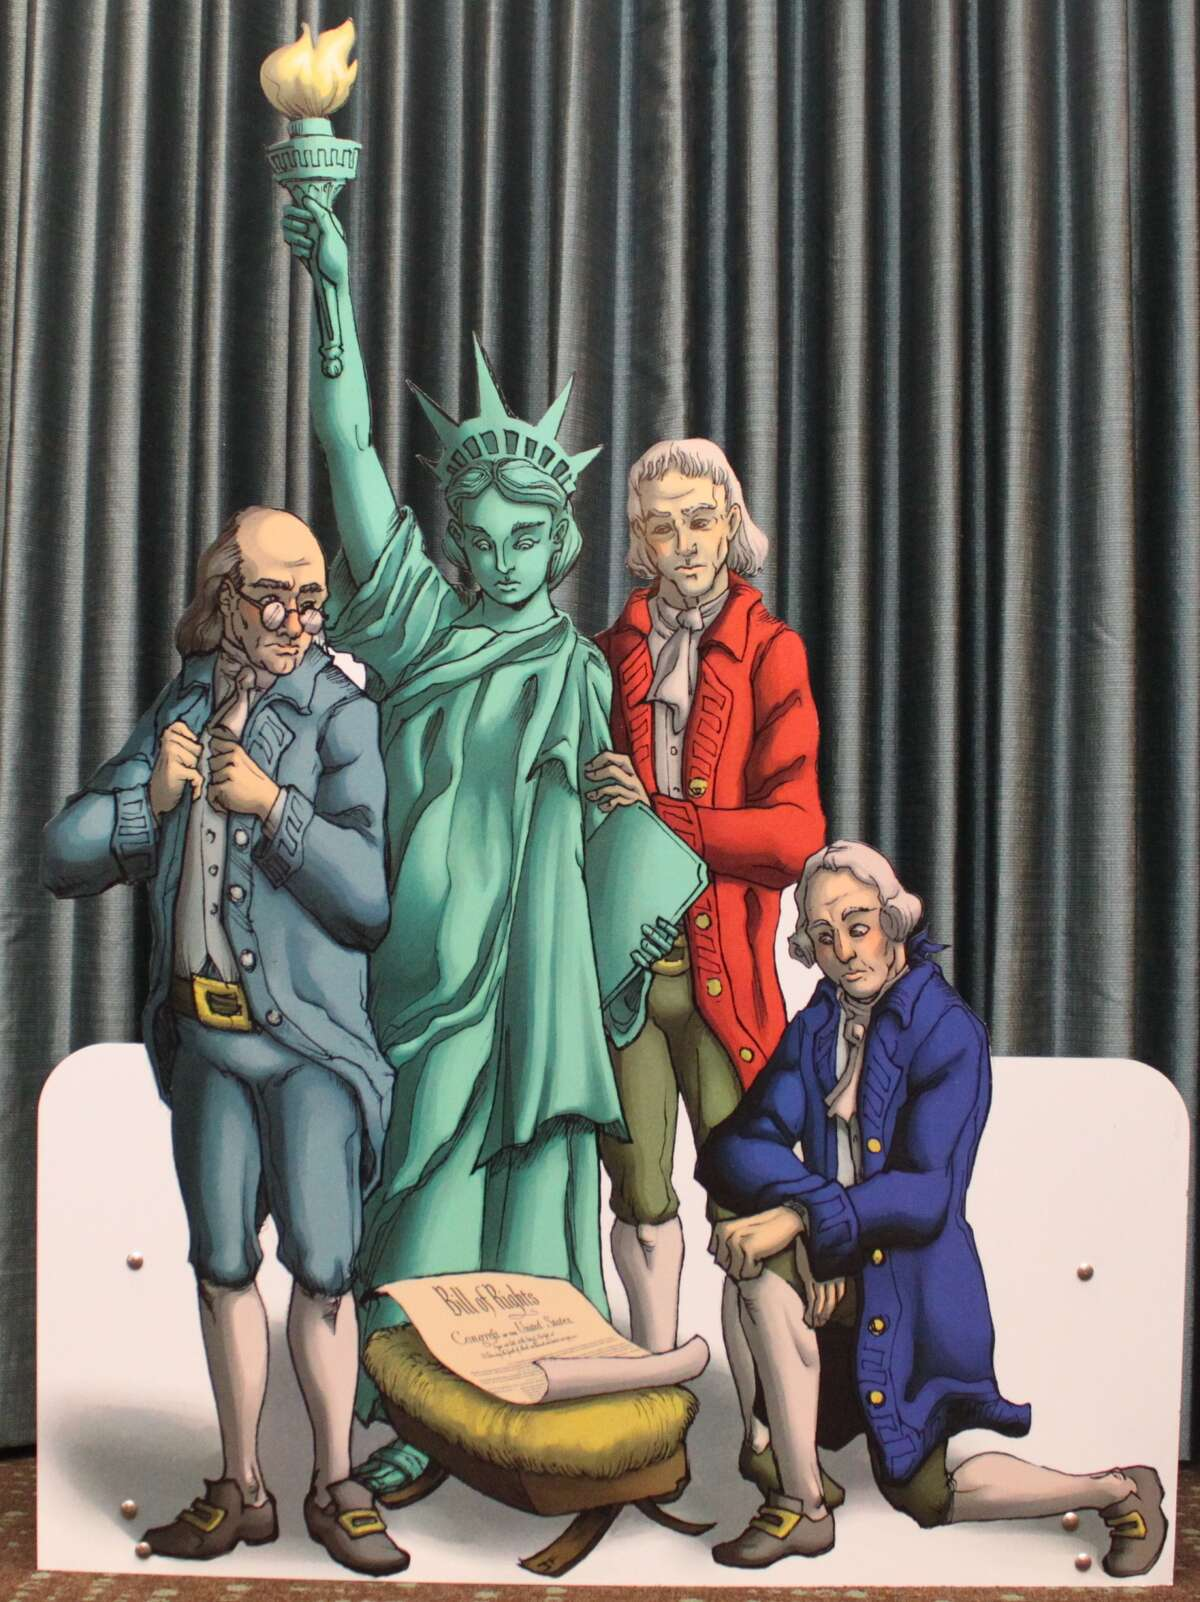 """The Freedom From Religion Foundation, which promotes separation of church and state, claims Abbott illegally censored their exhibit, which depicts """"the Founding Fathers and the Statue of Liberty crowded adoringly around a manger scene containing"""" the U.S. Constitution."""